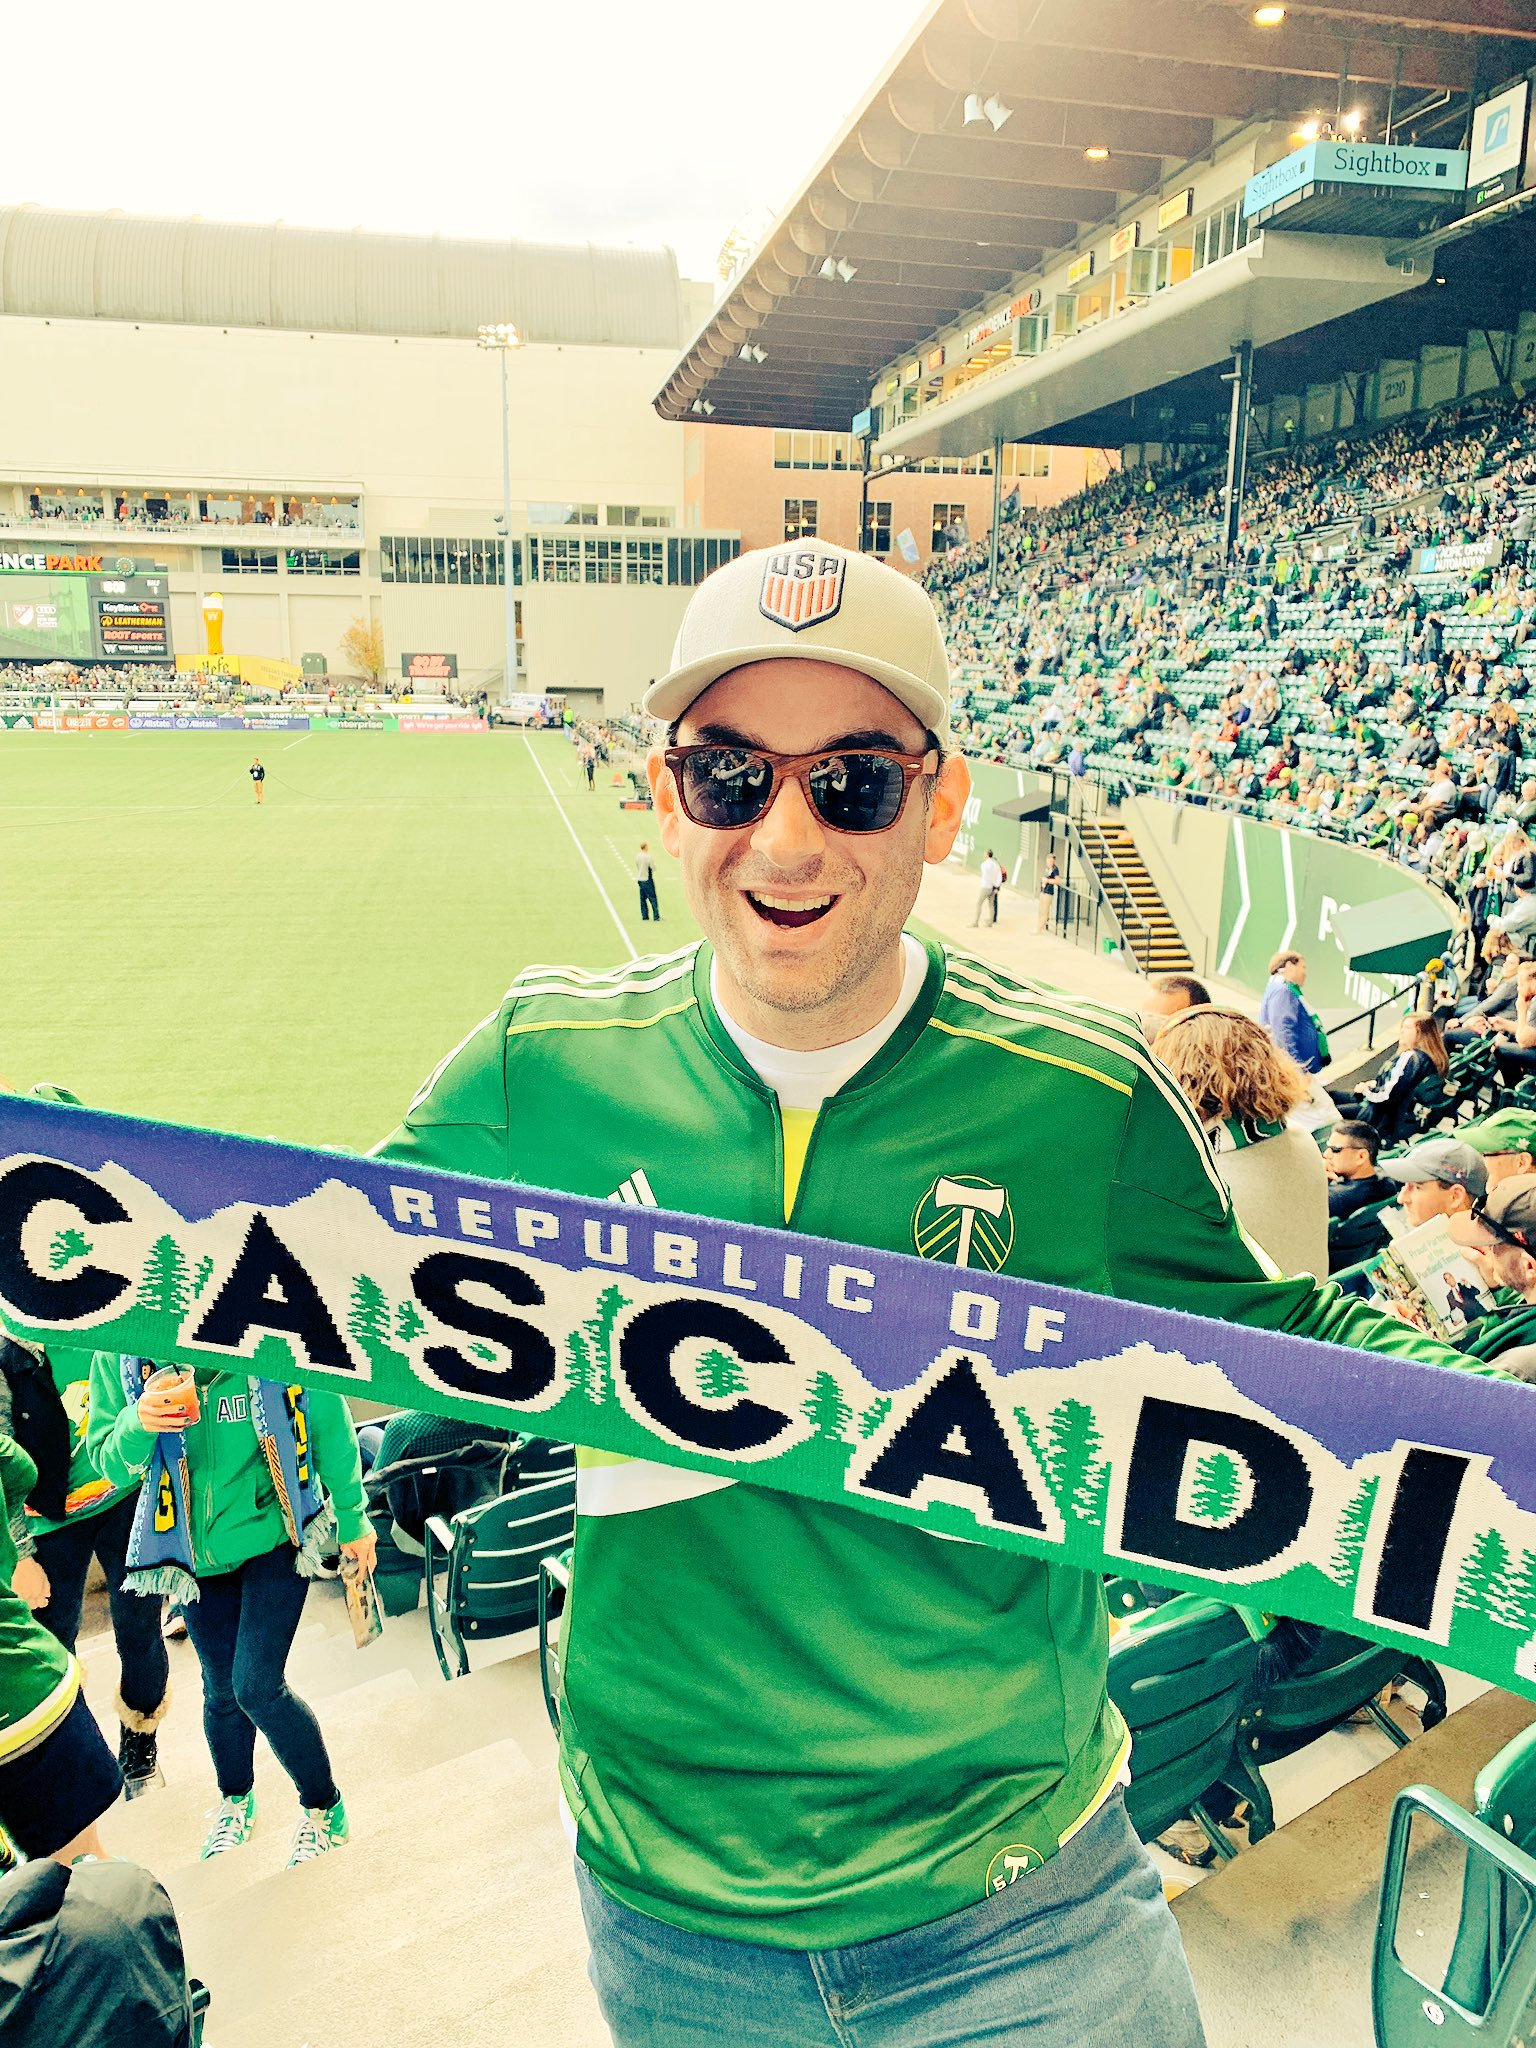 Republic of Cascadia - Football Time